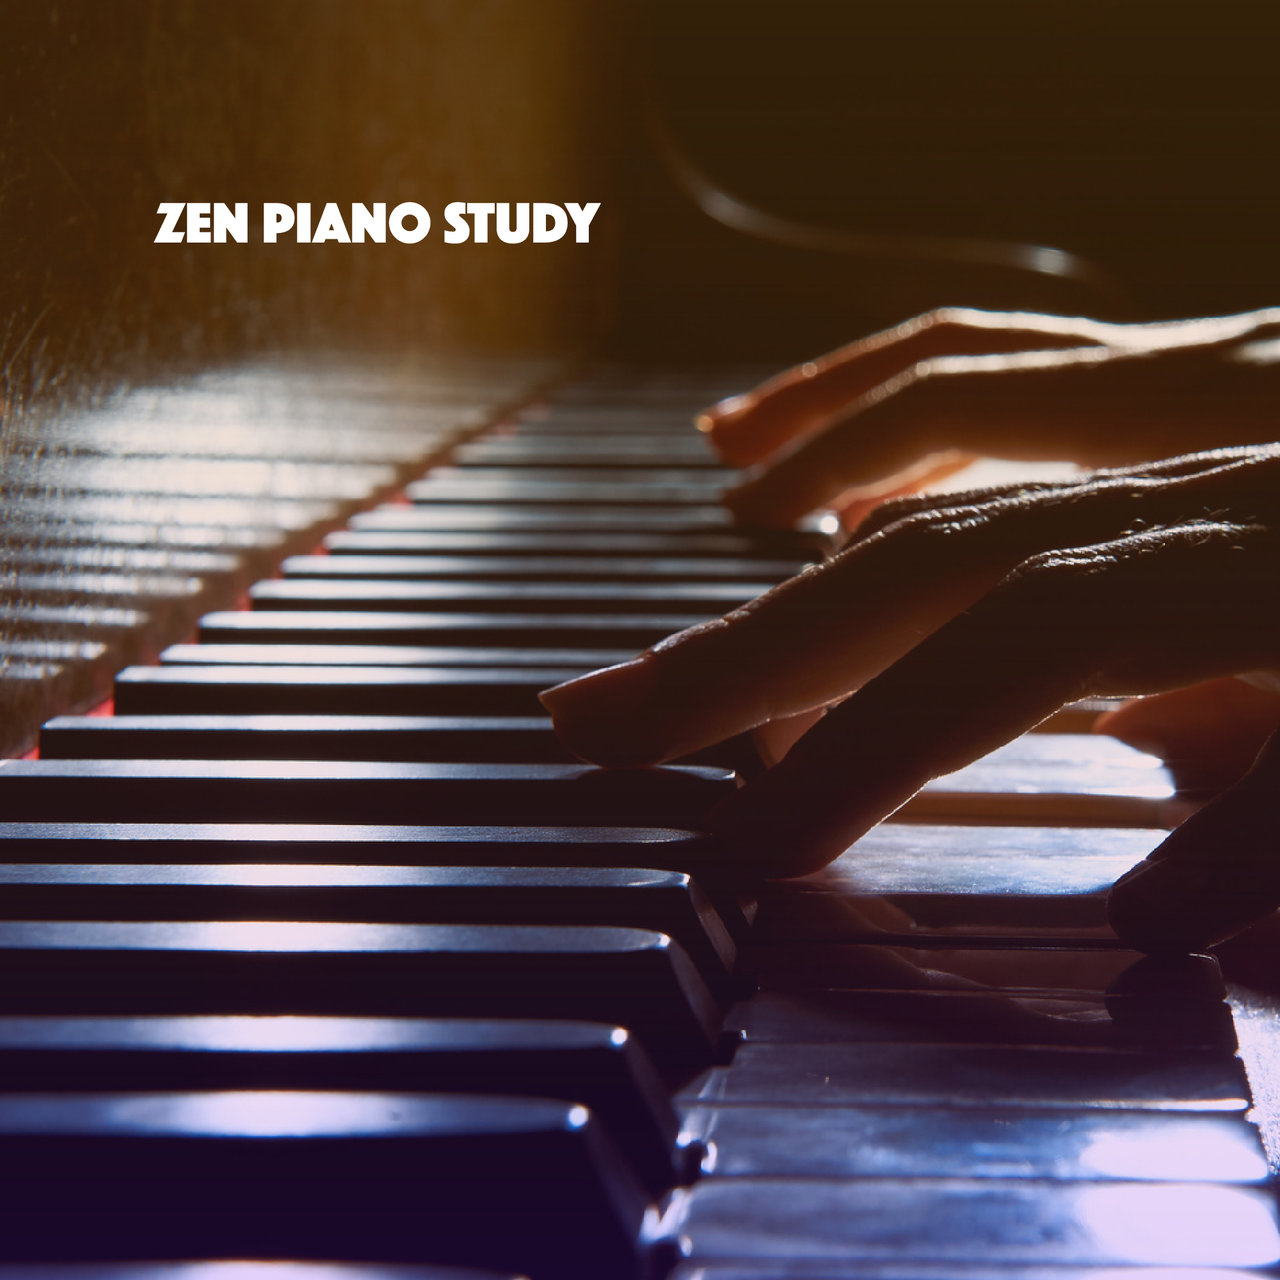 Zen Piano Study by Exam Study Classical Music Orchestra on TIDAL